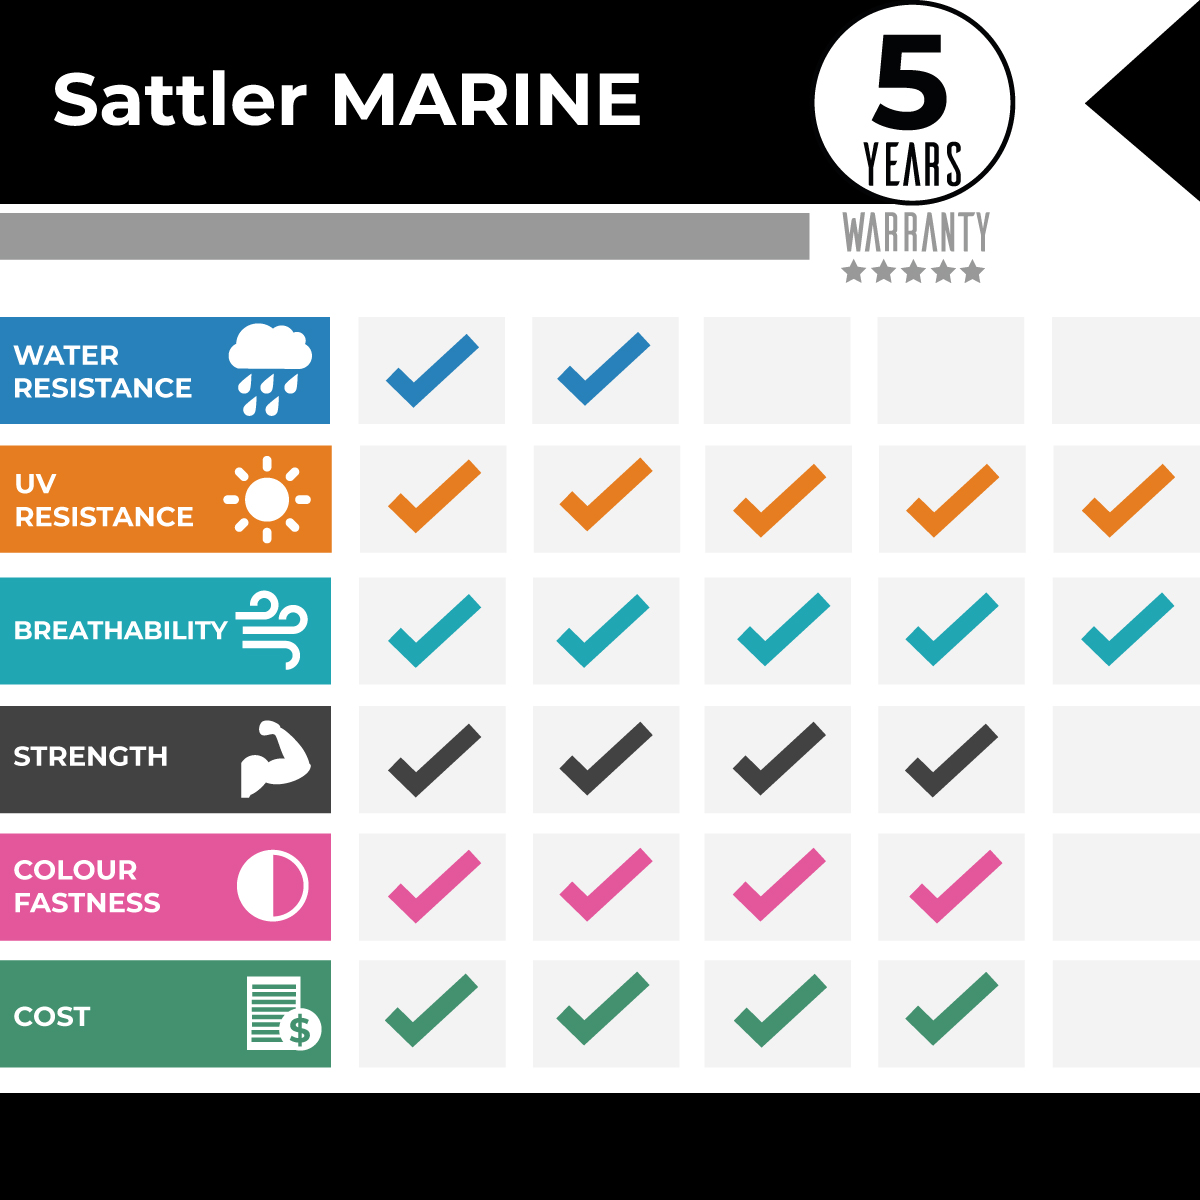 Sattler MARINE Comparison Graph